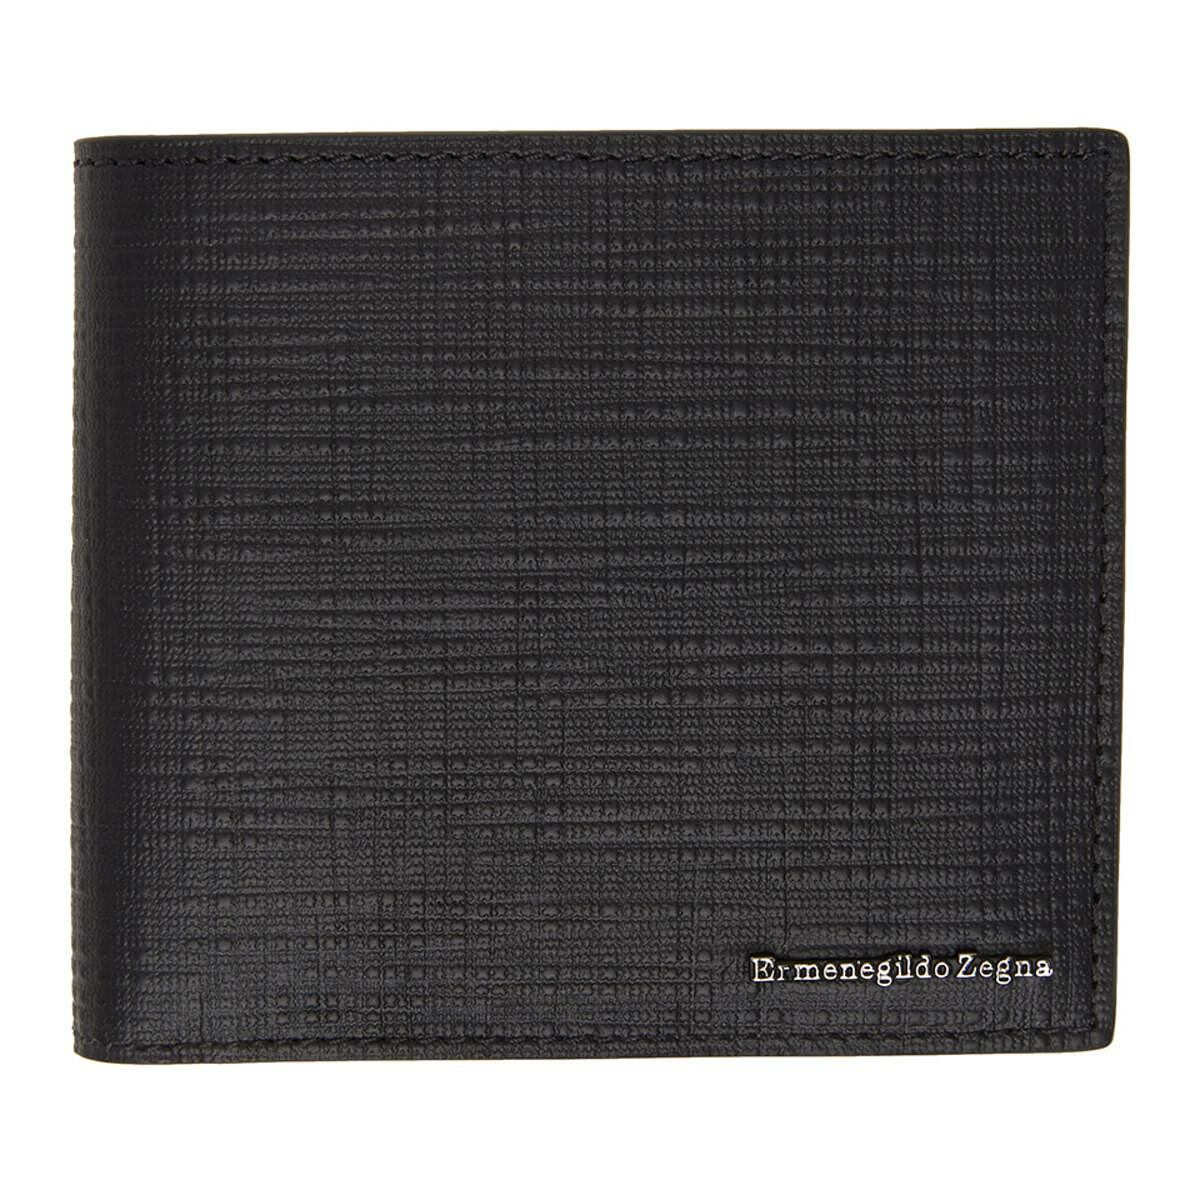 Ermenegildo Zegna Black Leather Wallet Ssense USA MEN Men ACCESSORIES Mens WALLETS